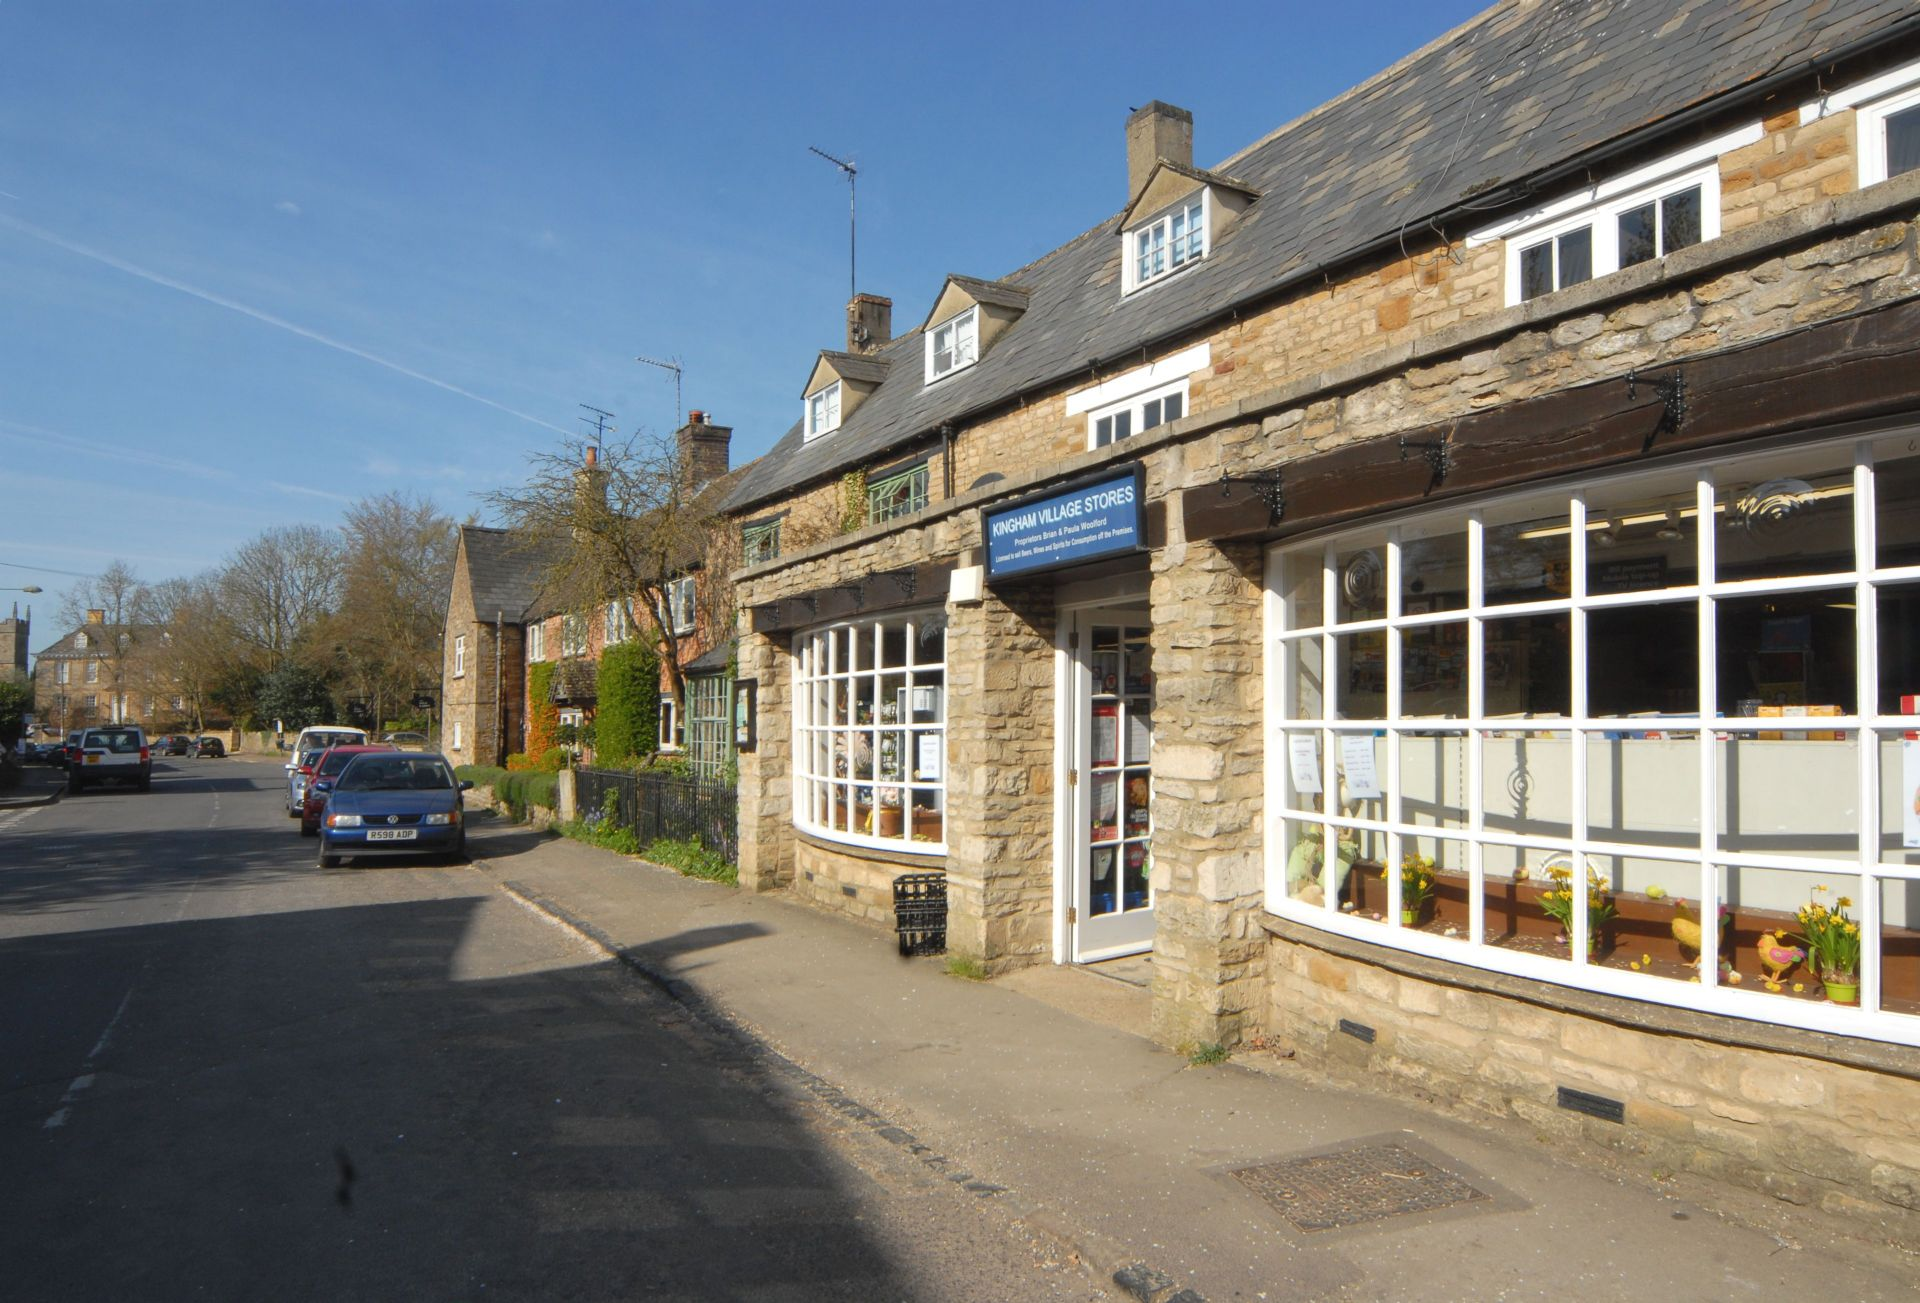 A view of the village shop